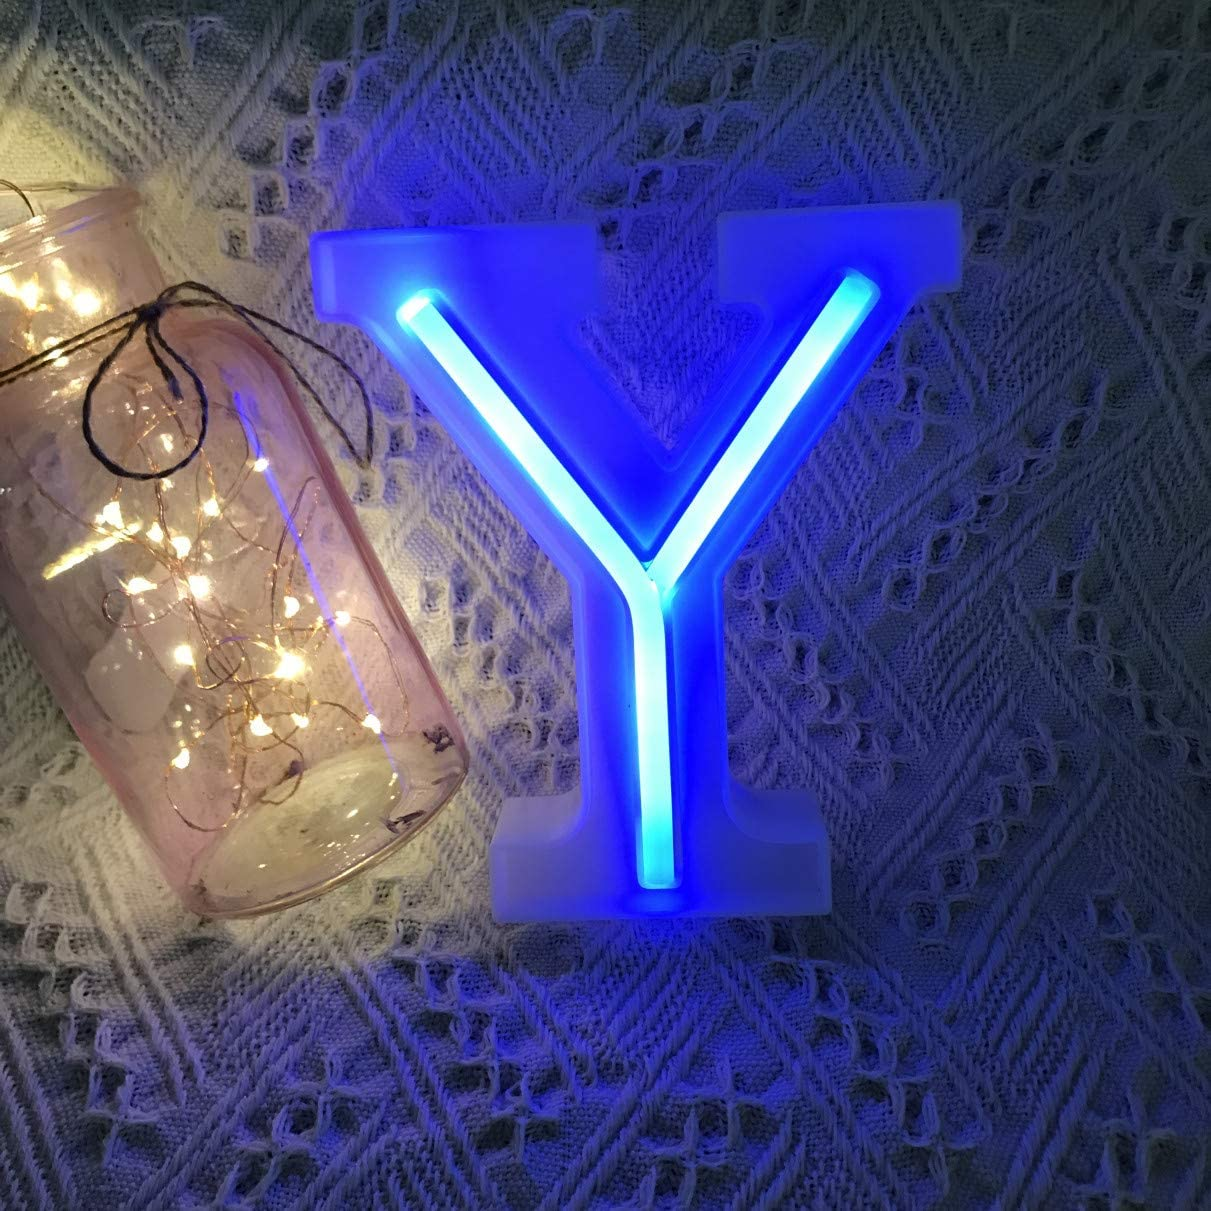 QiaoFei Light Up Marquee Letters Lights Letters Neon Signs, Pink Wall Decor/Table Decor for Home Bar Christmas, Birthday Party, Valentinefs Day Words-Blue Letters (Y)